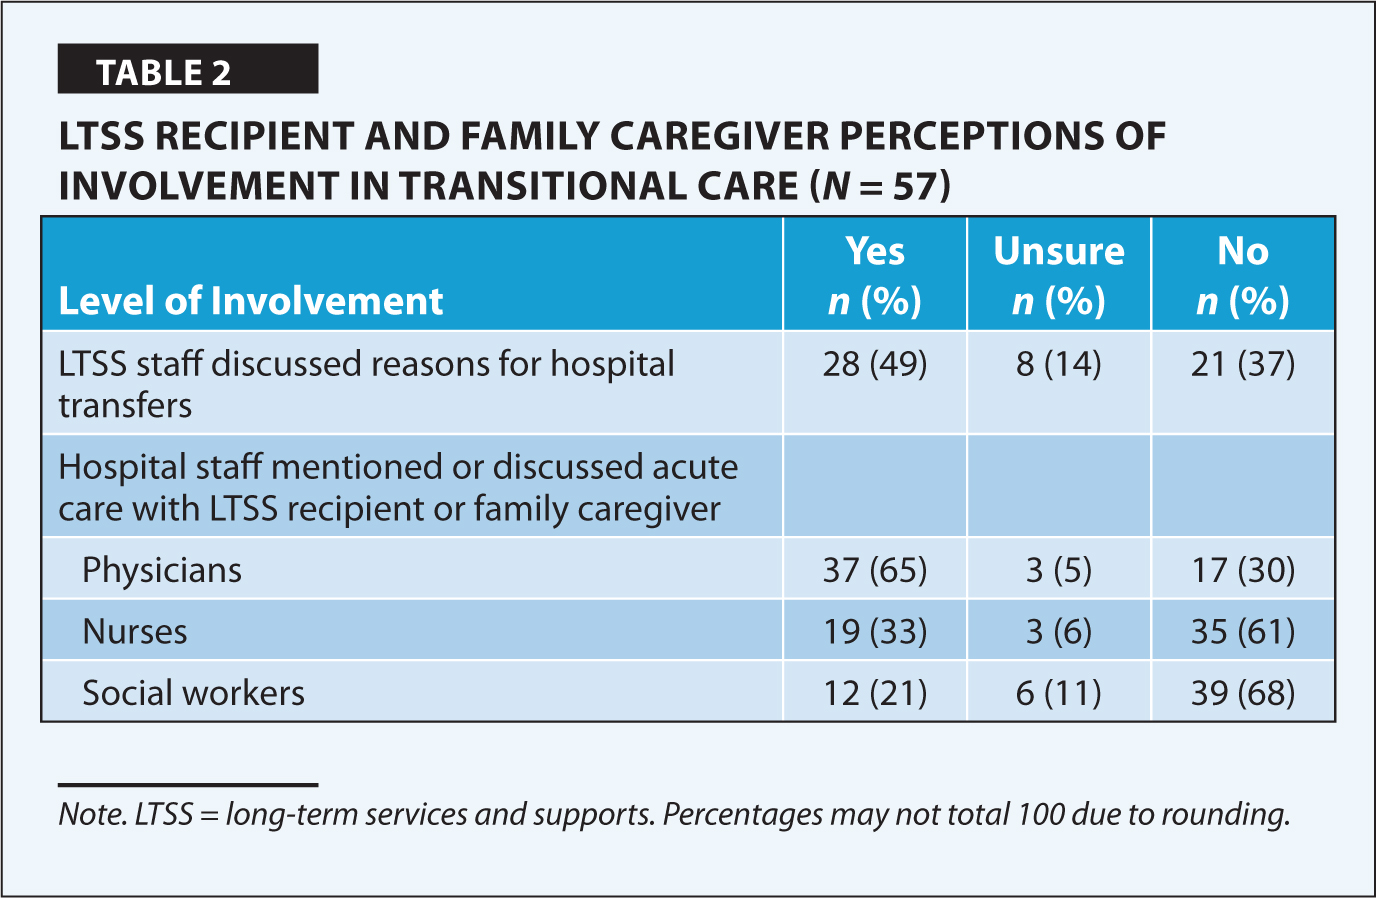 LTSS Recipient and Family Caregiver Perceptions of Involvement in Transitional Care (N = 57)